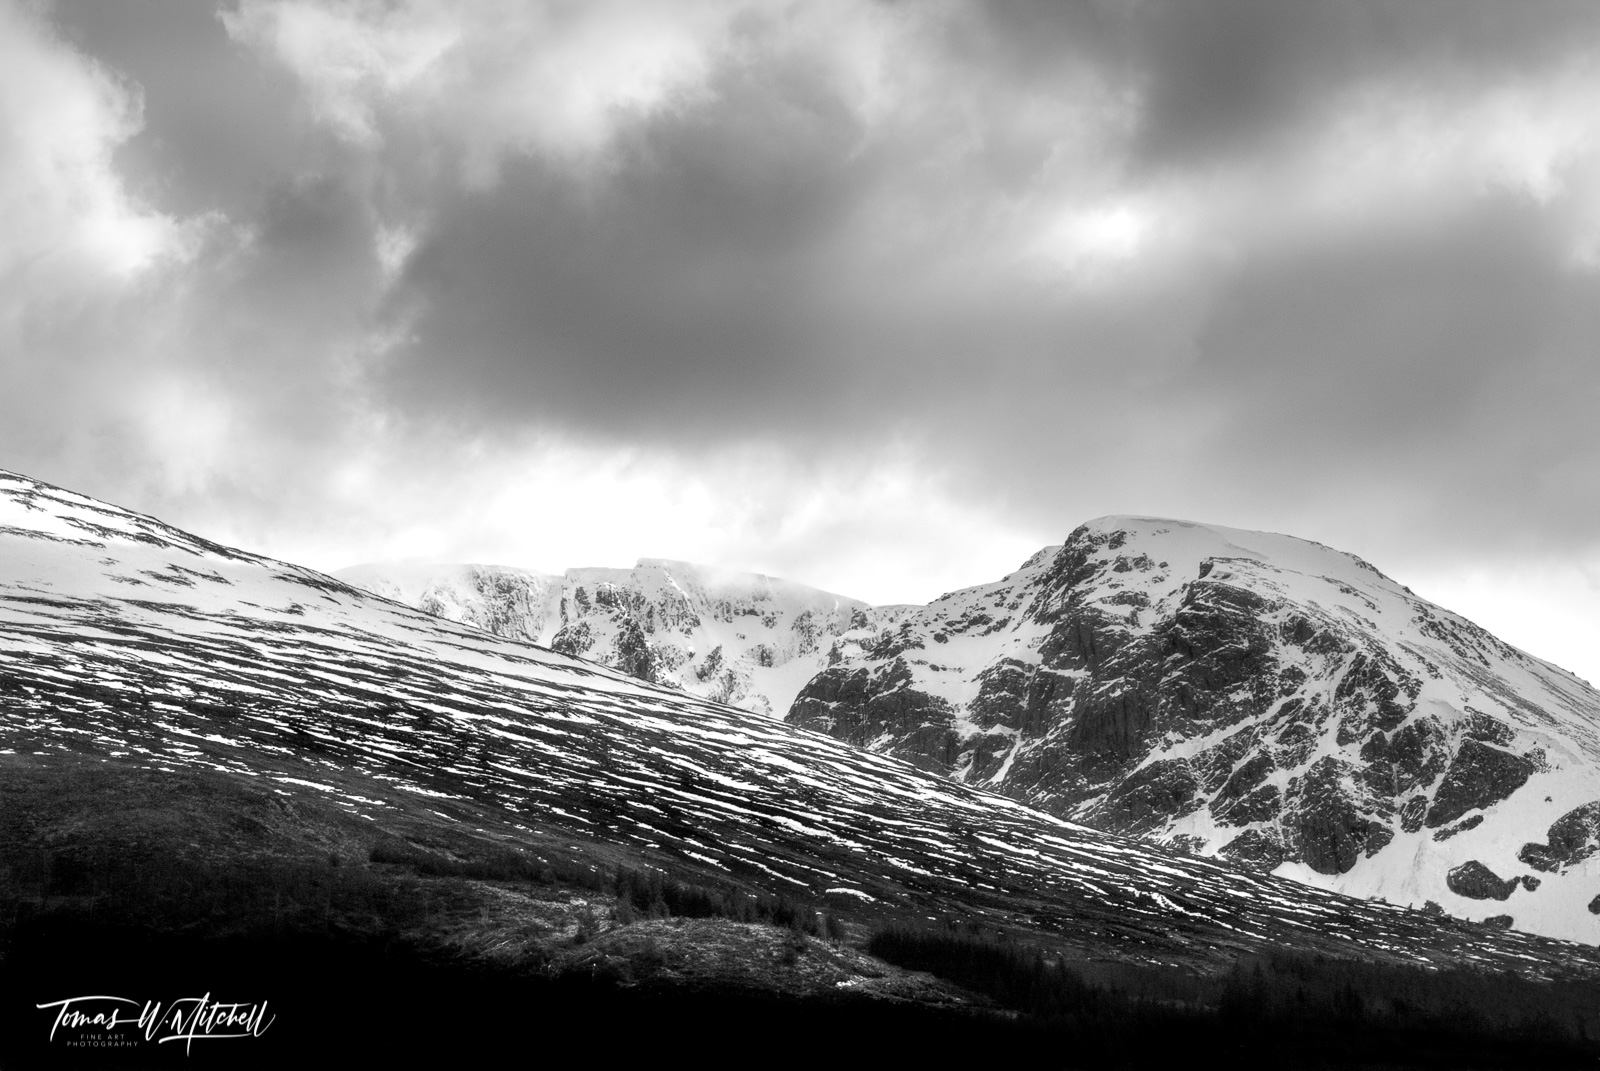 limited edition, museum grade, fine art, prints, ben nevis, scotland, grampian mountains, mountain, photograph, black and white, clouds, sun, scottish, snow, photo